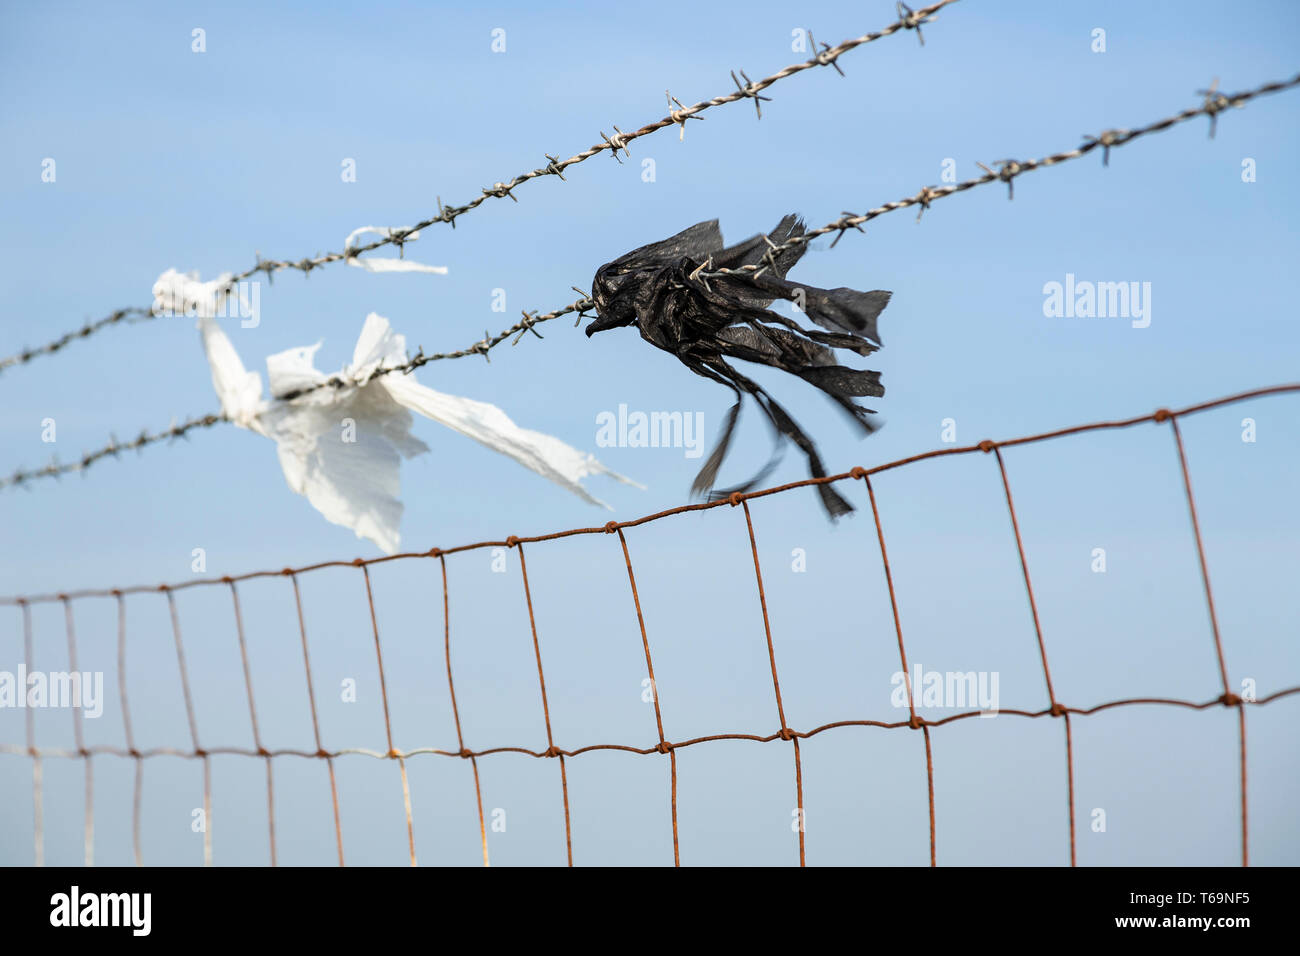 Torn plastic bags caught on a barbed wire fence blowing in the wind - Stock Image